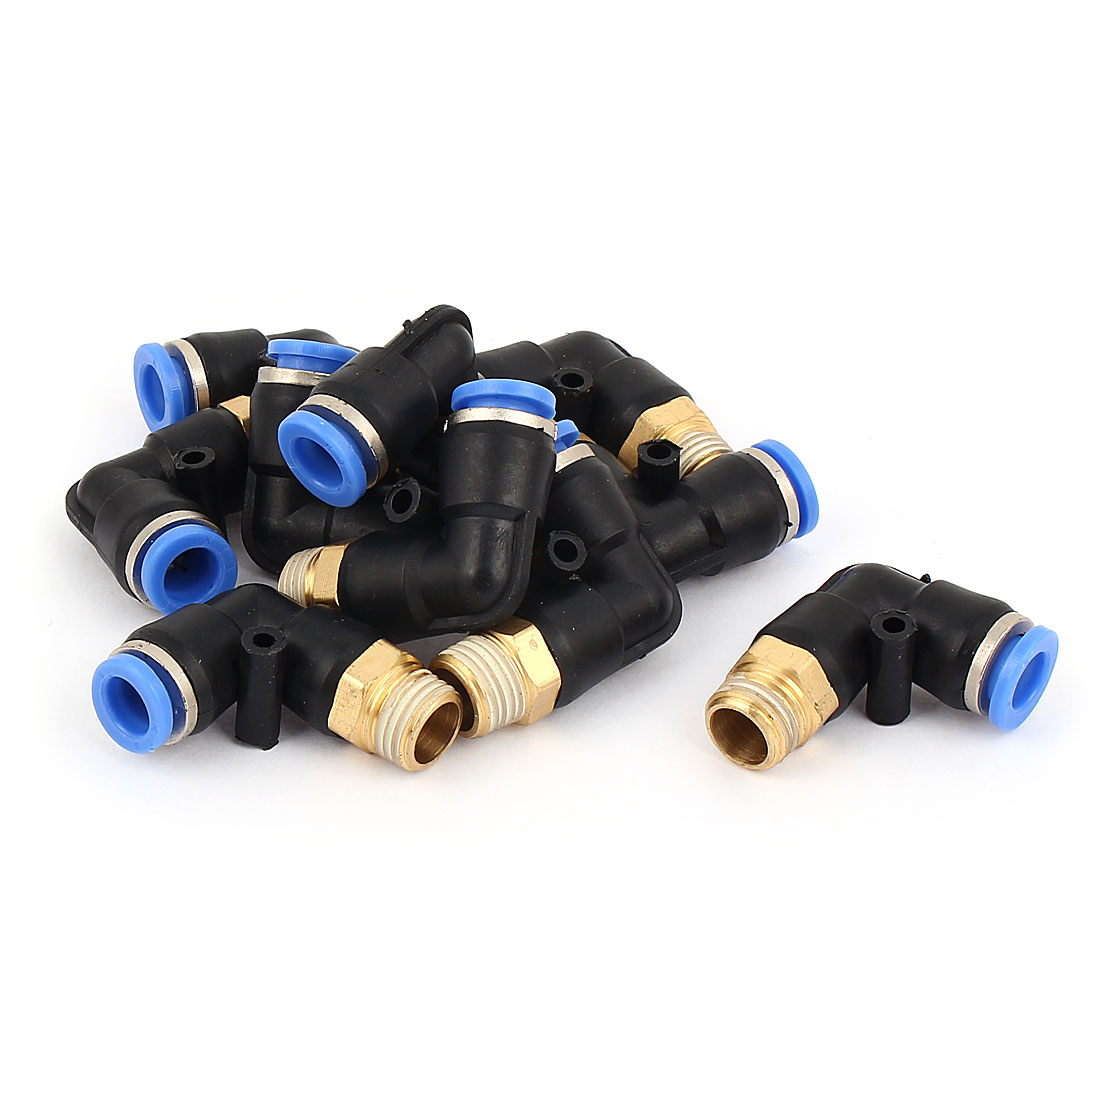 "10 Pcs 8mm Hole Dia 1/4"" PT Thread Push In Tube Pneumatic Quick Fittings"